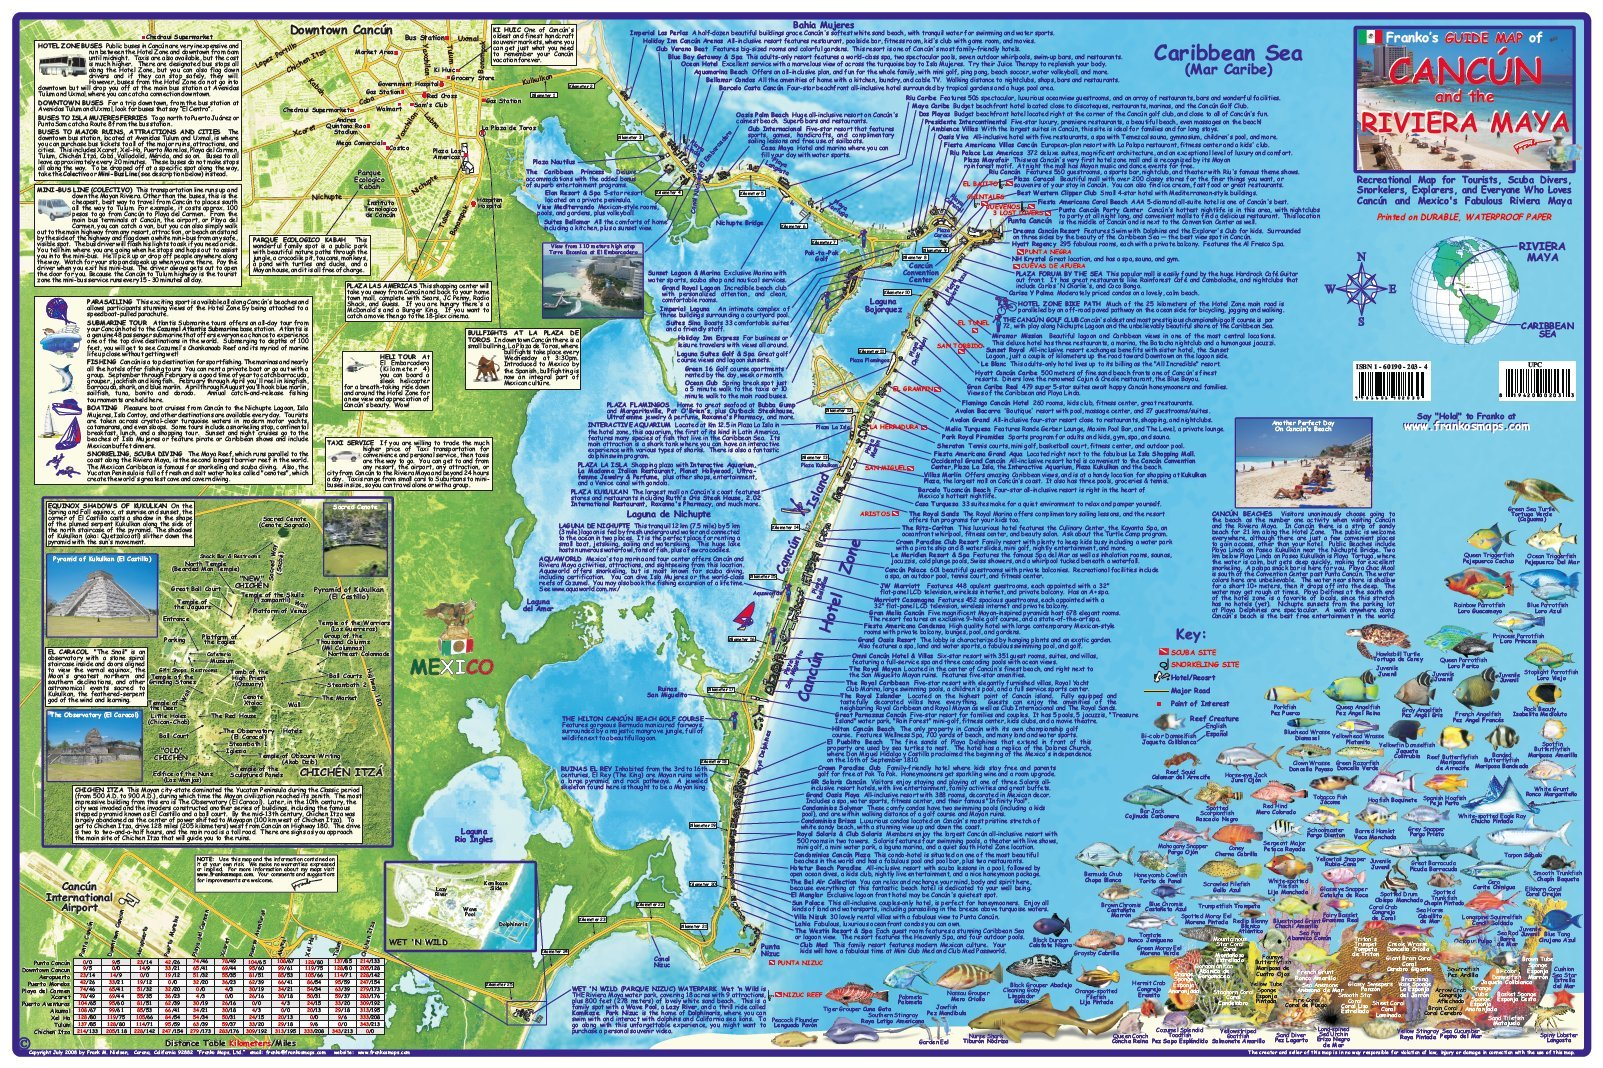 Cancun & Riviera Maya Mexico Adventure & Dive Map Laminated Poster on chichen itza map, isla mujeres, chichen itza, the grand mayan resort map, jamaica map, puerto morelos, isla mujeres map, london map, puerto vallarta map, maya map, mazatlan map, mayan century map, quintana roo, playa del carmen map, cancun map, playa del carmen, carmel by the sea map, cozumel map, mayan peninsula map, mexican riviera, punta cana map, xel-há water park, san miguel de allende map, mexico map, yucatán, mayan palace resort map, yucatan map, belize map, cancún, xcaret eco park,